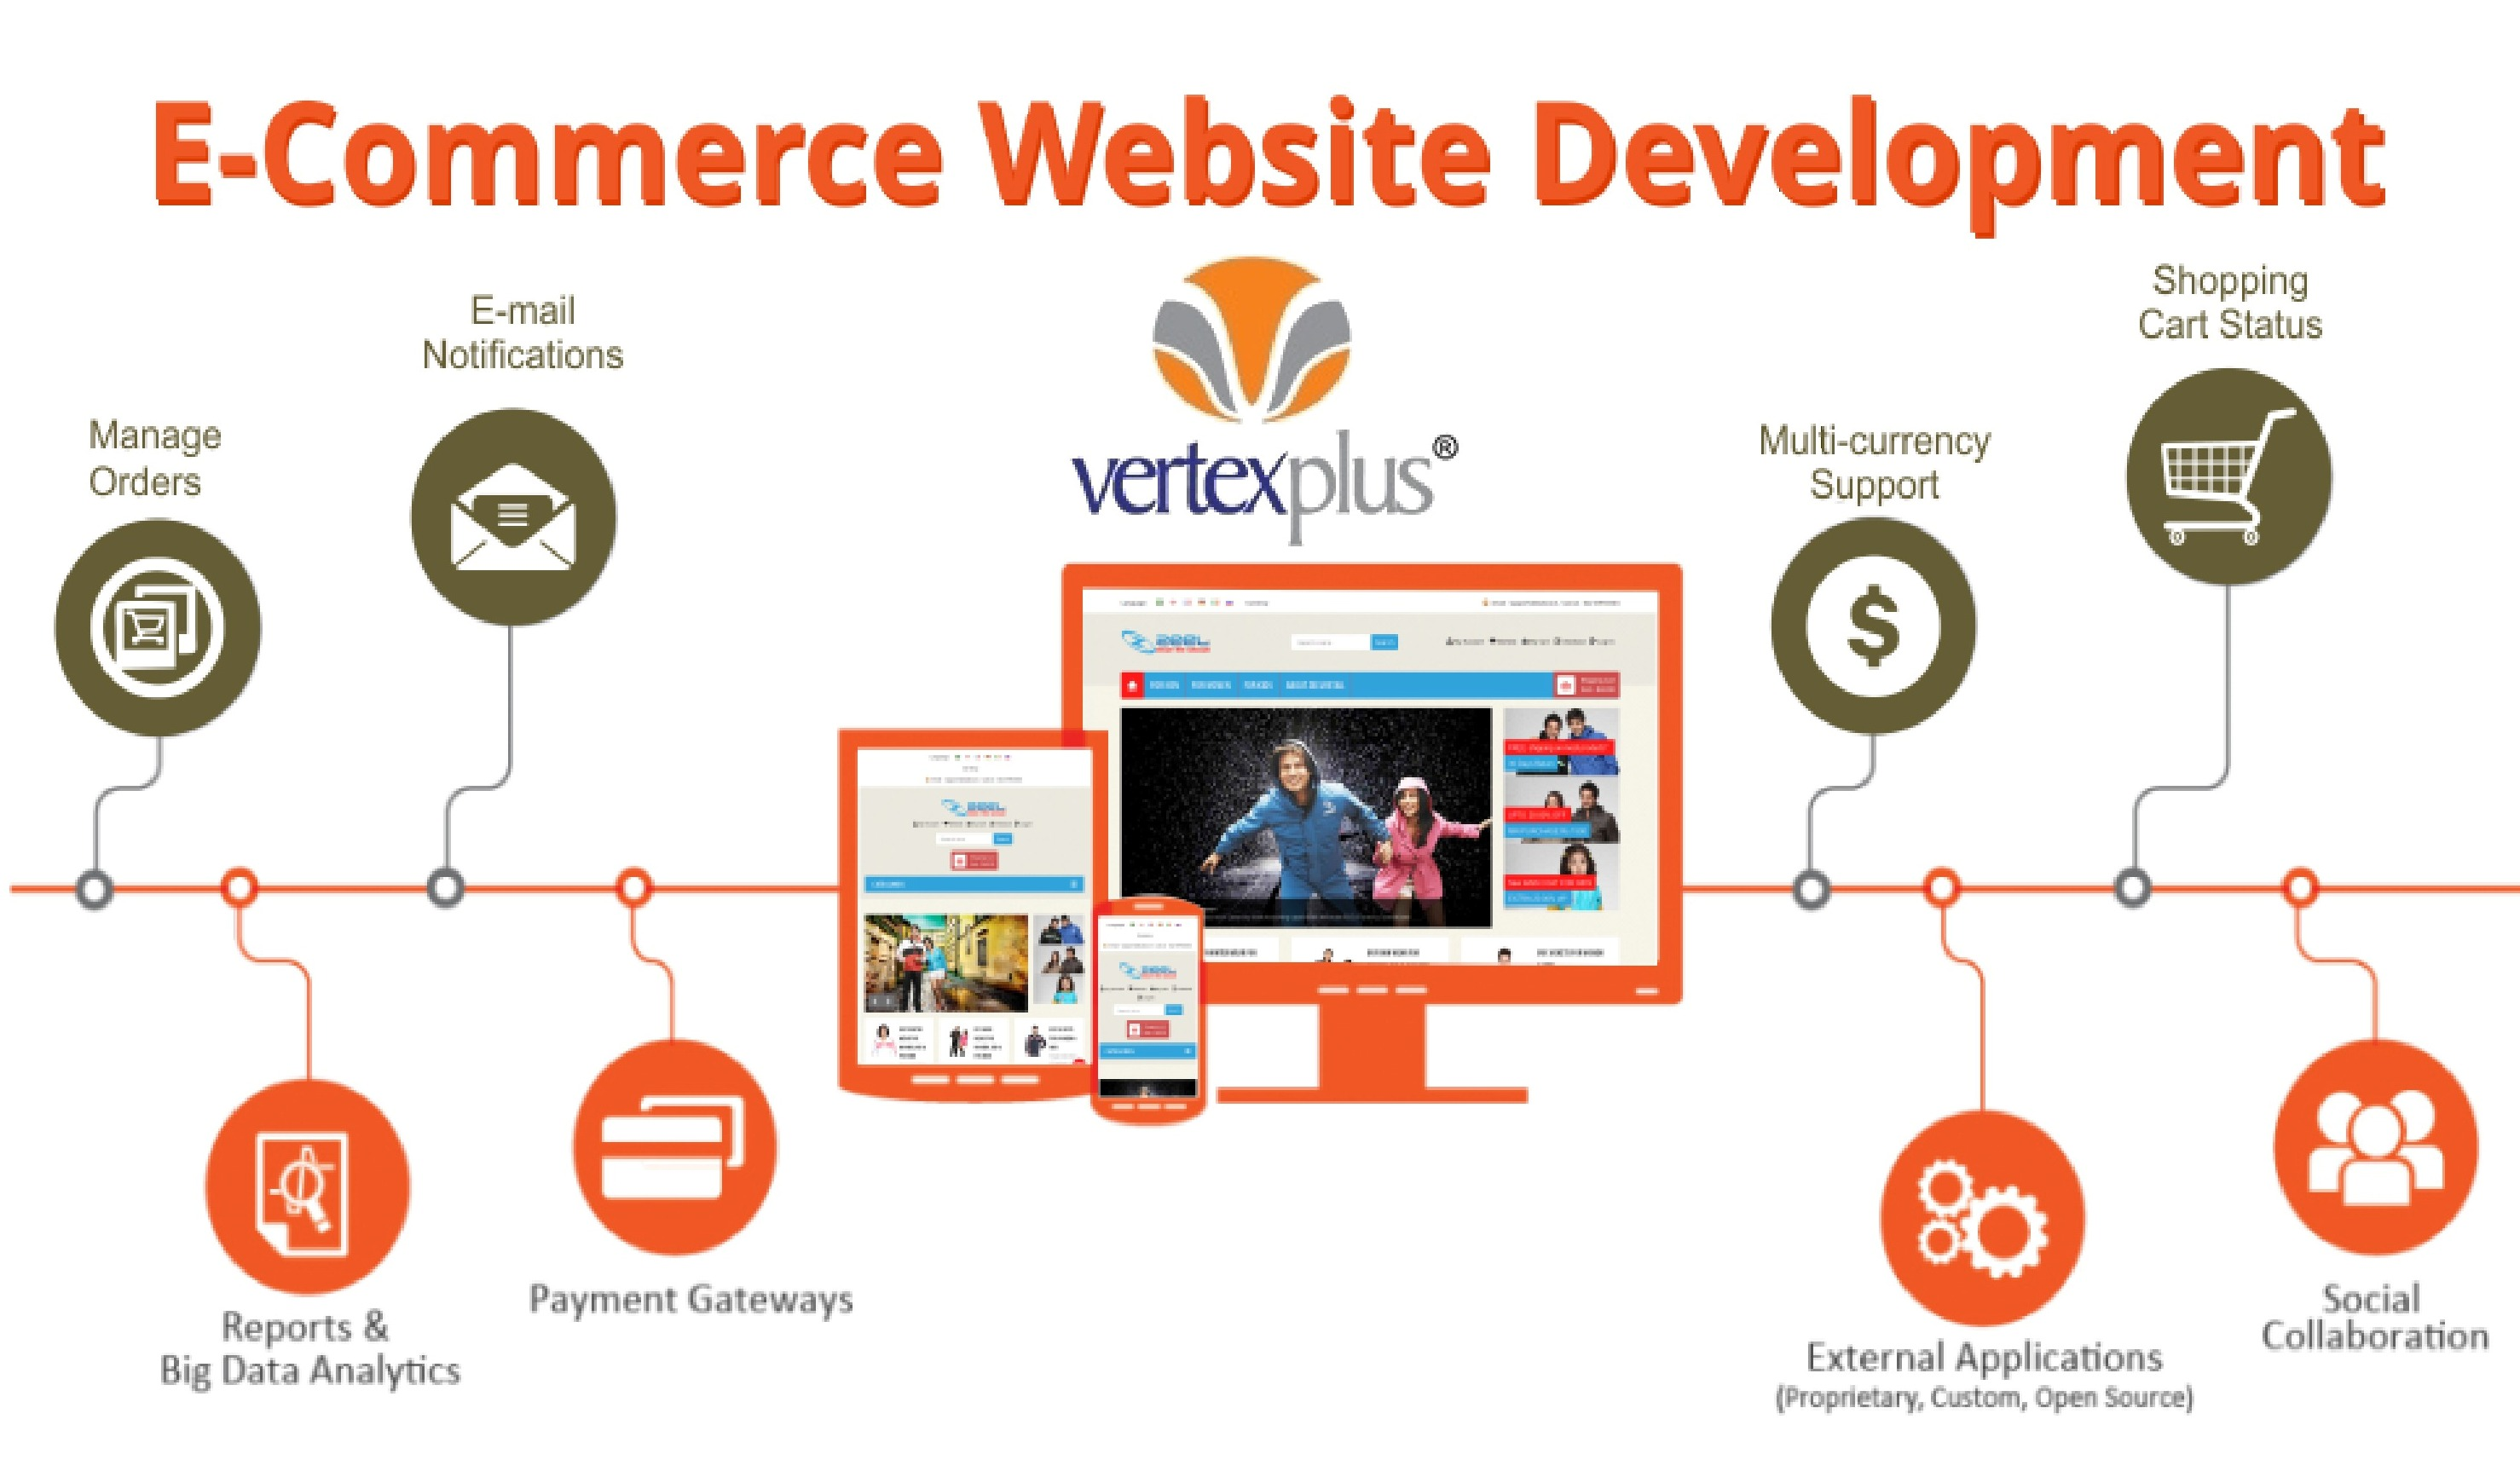 Best eCommerce Platform and Flexible solutions at VertexPlus Softwares VertexPlus Softwares offer end-to-end eCommerce services to development agencies, small businesses and SMEs, enabling them to drive revenue through online sales.